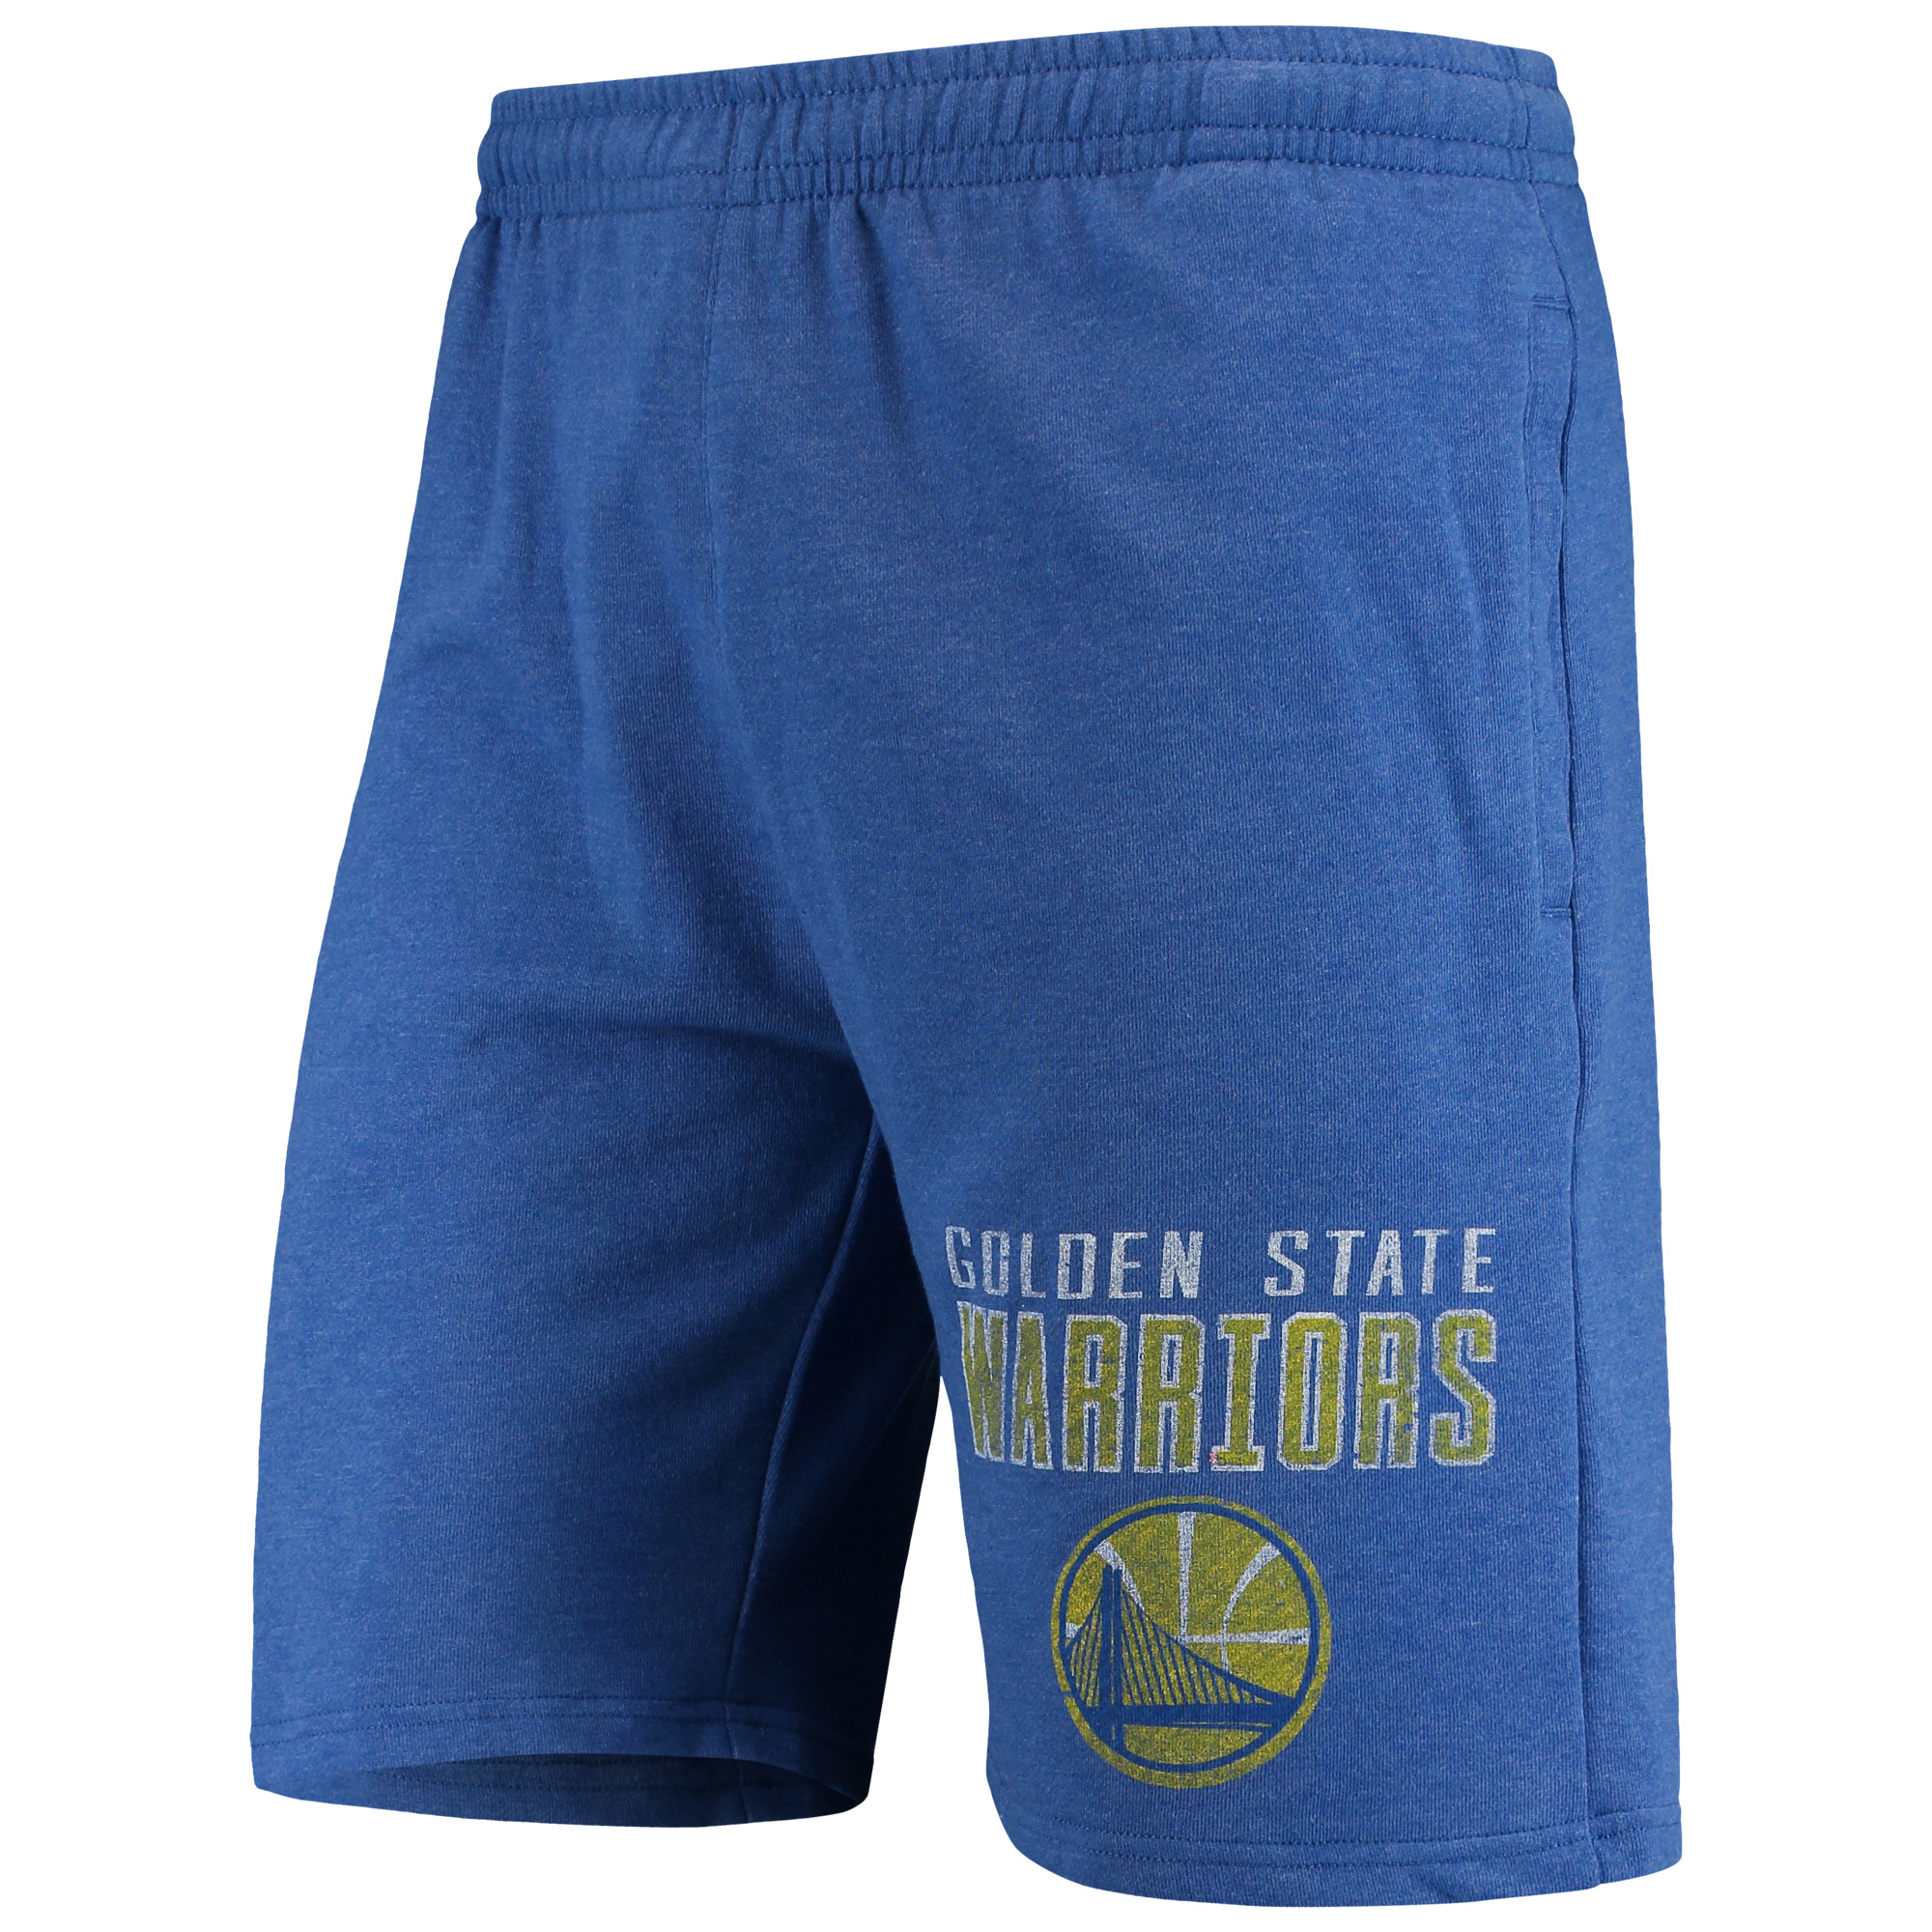 Golden State Warriors Concepts Sport Squeeze Play Knit Shorts - Heathered Royal